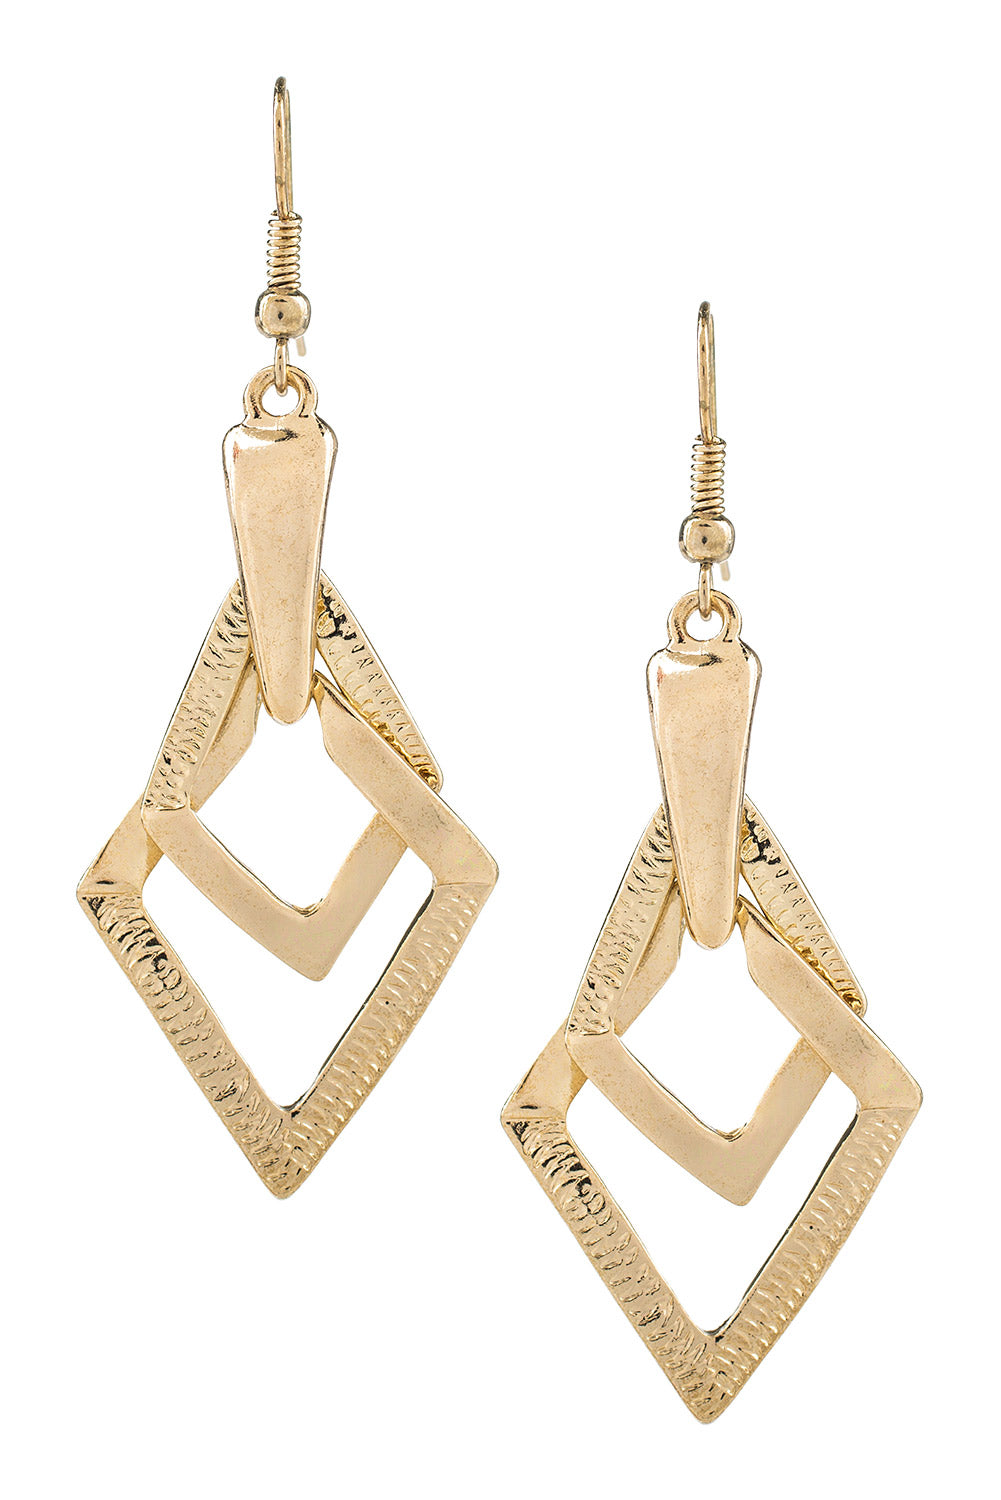 Type 3 Daytona Earrings